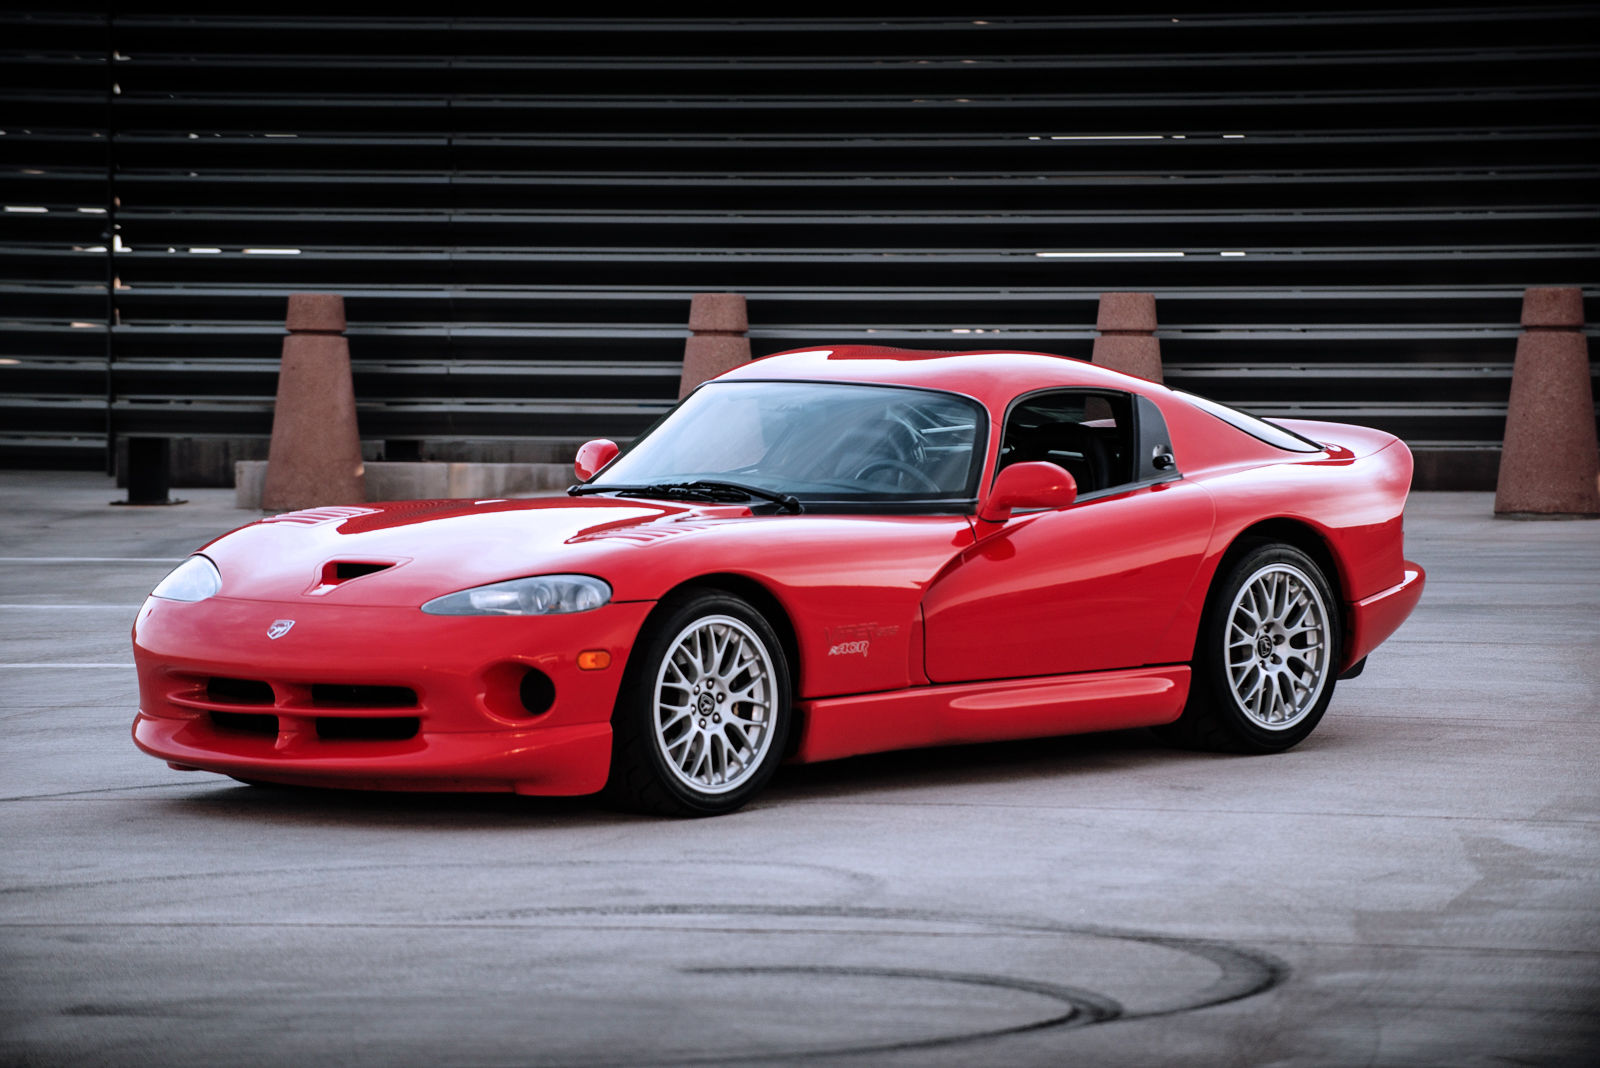 Supercharged 2000 Dodge Viper GTS ACR Shows Up On Ebay | Carscoops